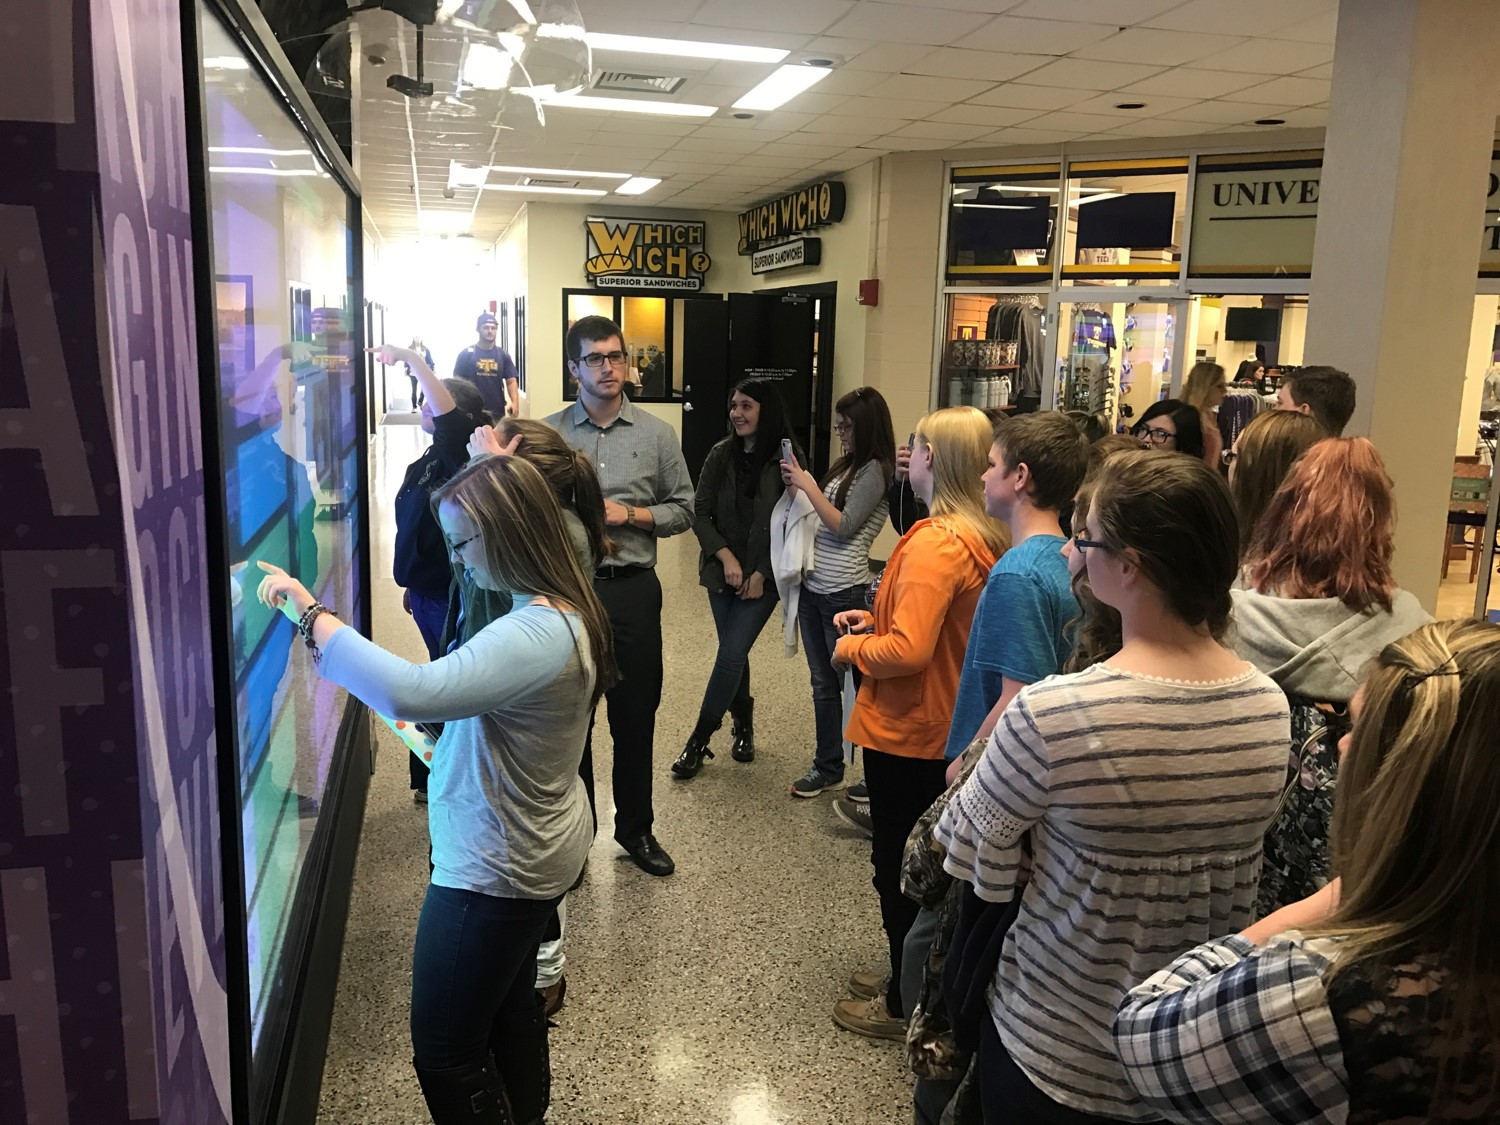 On Tuesday, March 21st, the Clinton County High School freshmen students enjoyed a visit to the campus of Tennessee Tech, sponsored by GEAR UP.